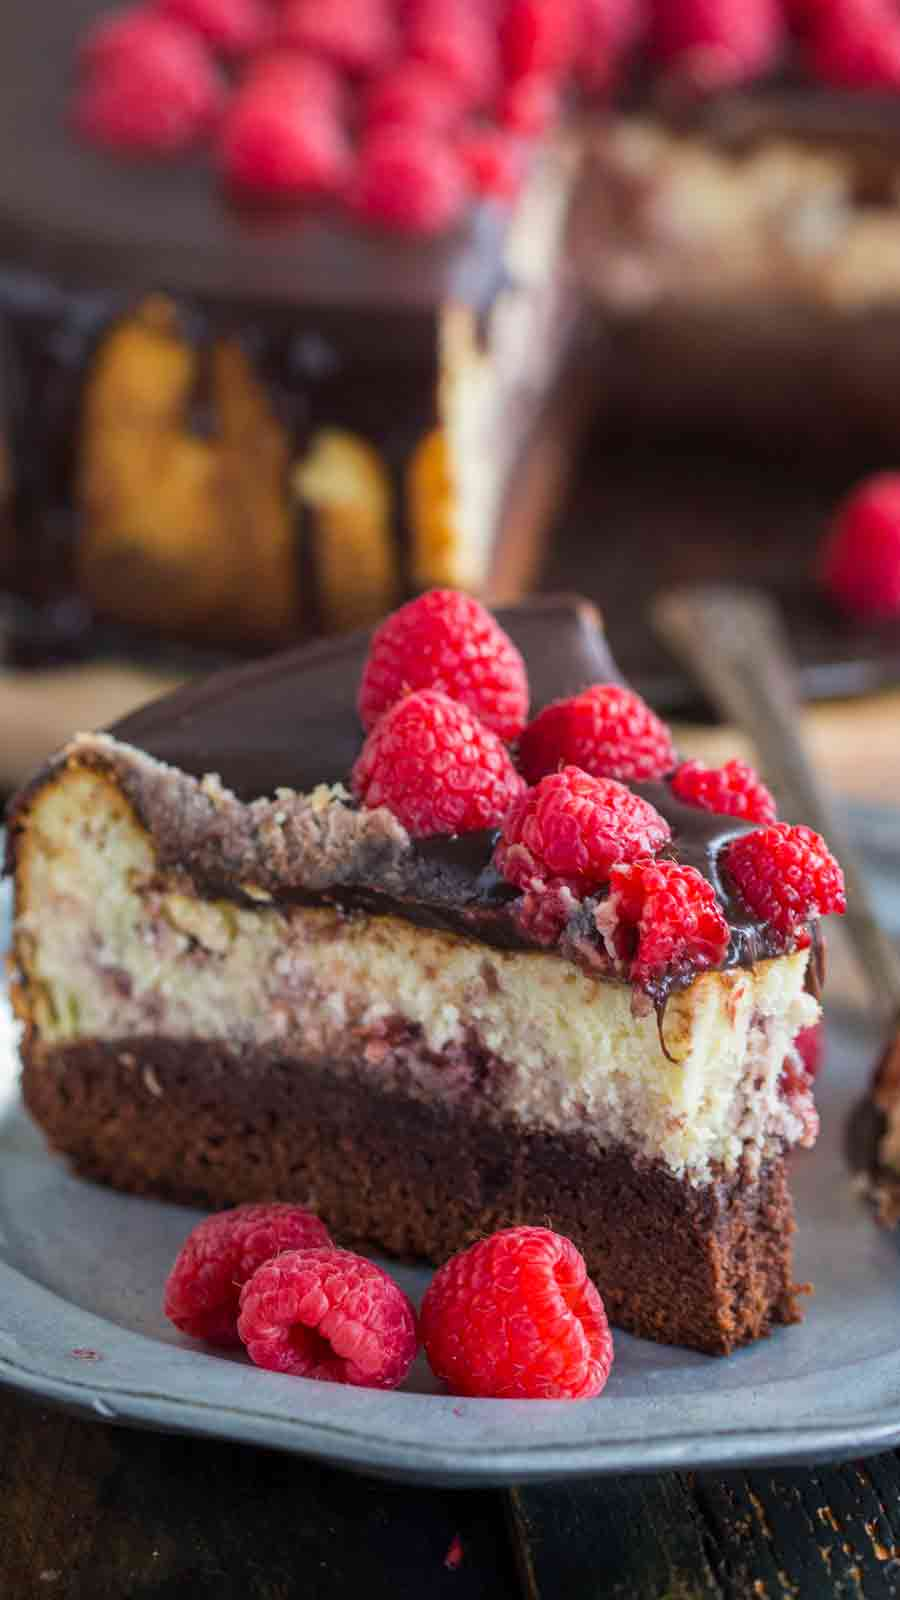 Brownie Bottom Raspberry Cheesecake is a showstopper dessert would be perfect for Valentine's Day! A brownie base topped with a creamy New York style cheesecake and a hefty amount of raspberry preserves.